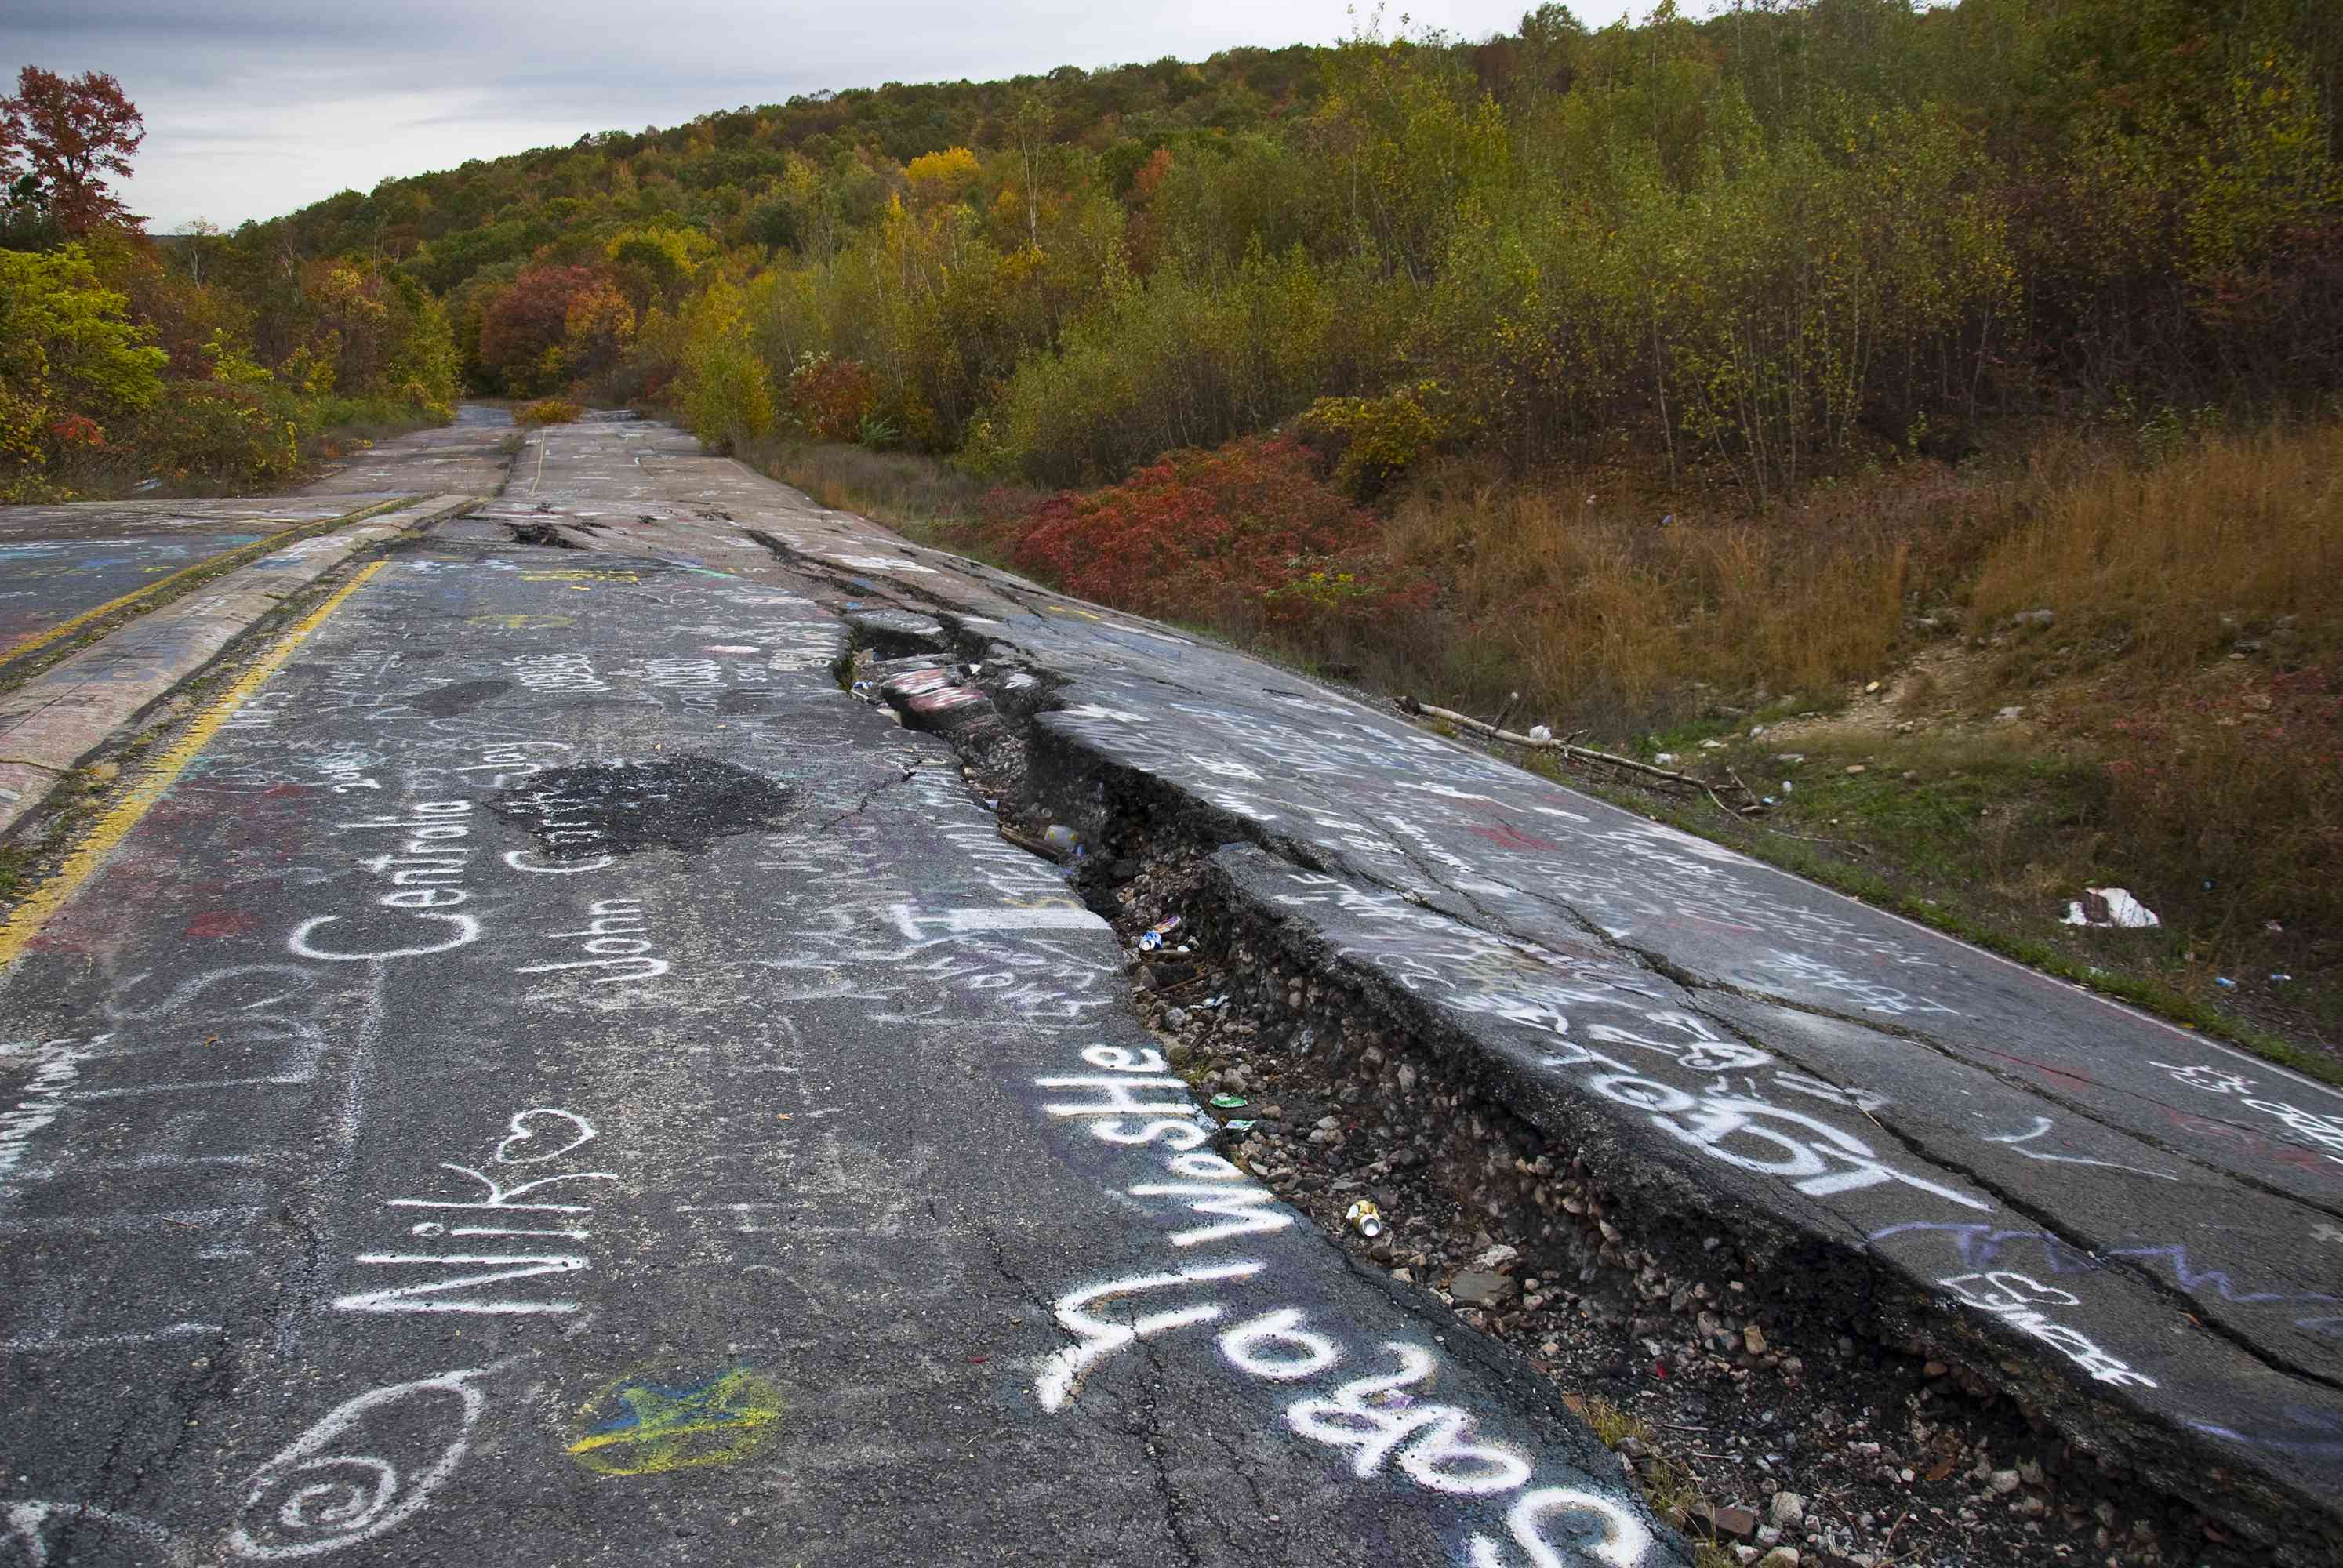 Low-angle view of cracked asphalt due to underground fire